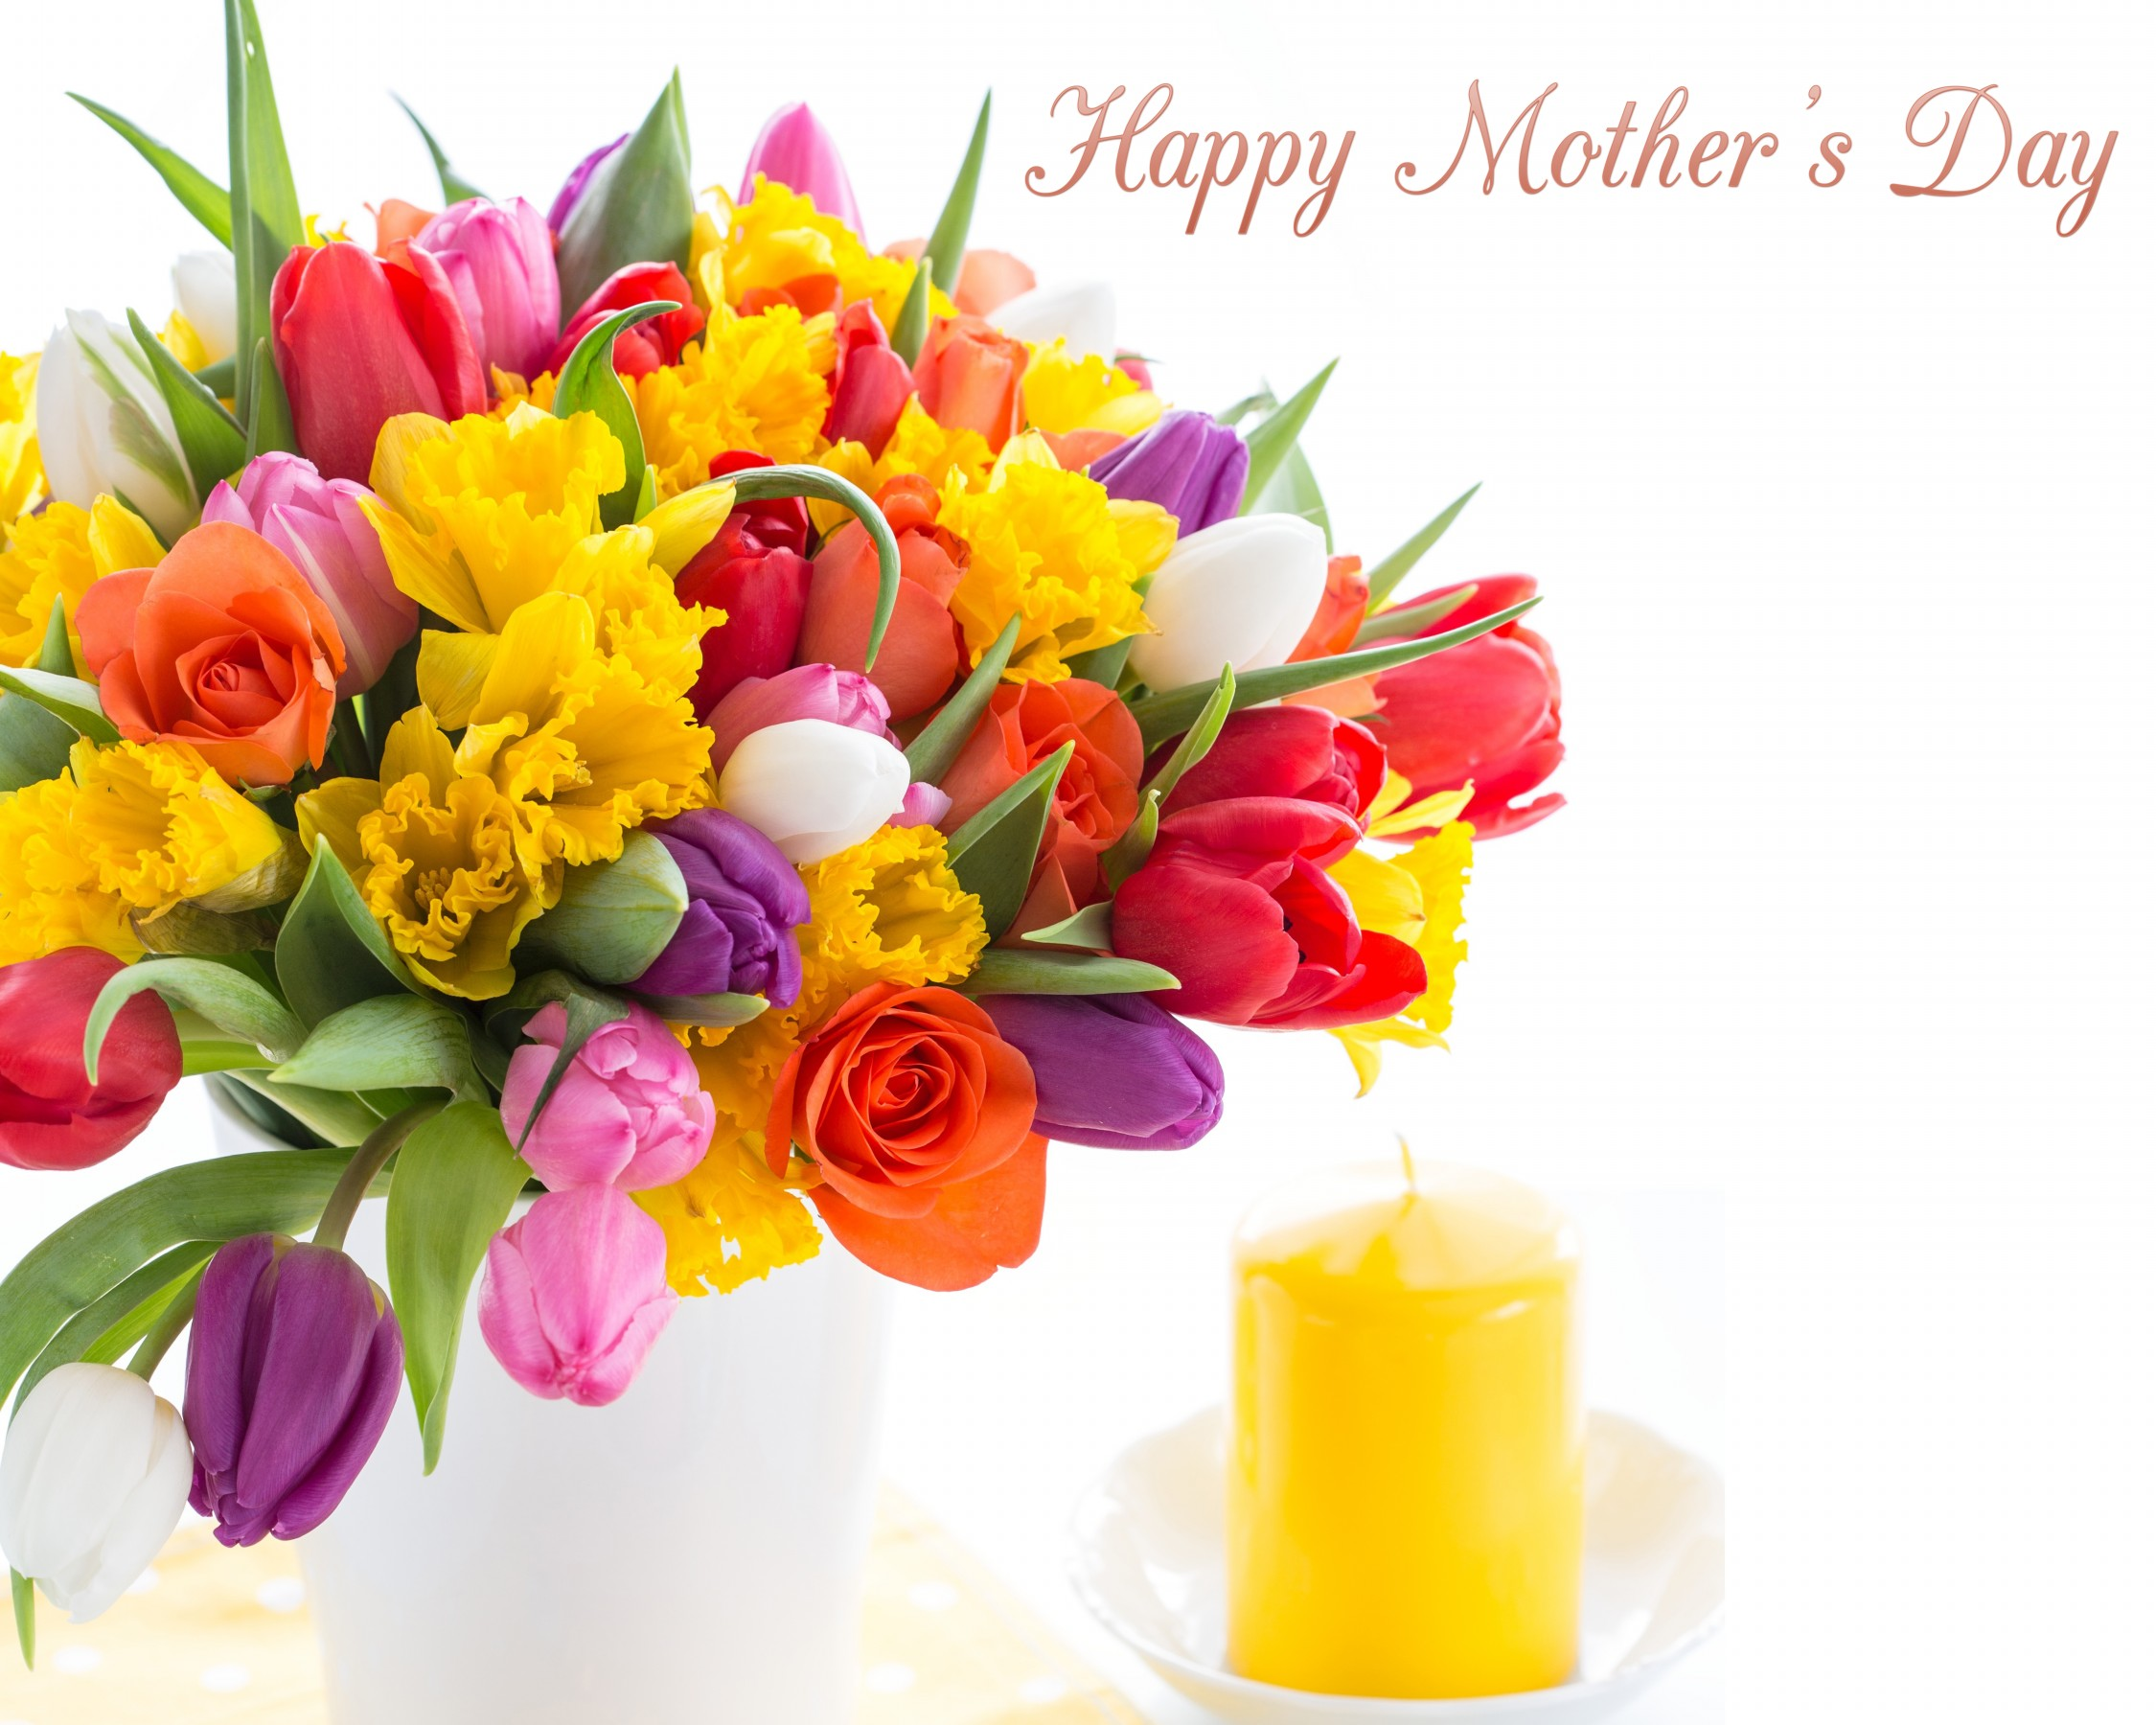 Mothers-Day-Flowers-Images-1